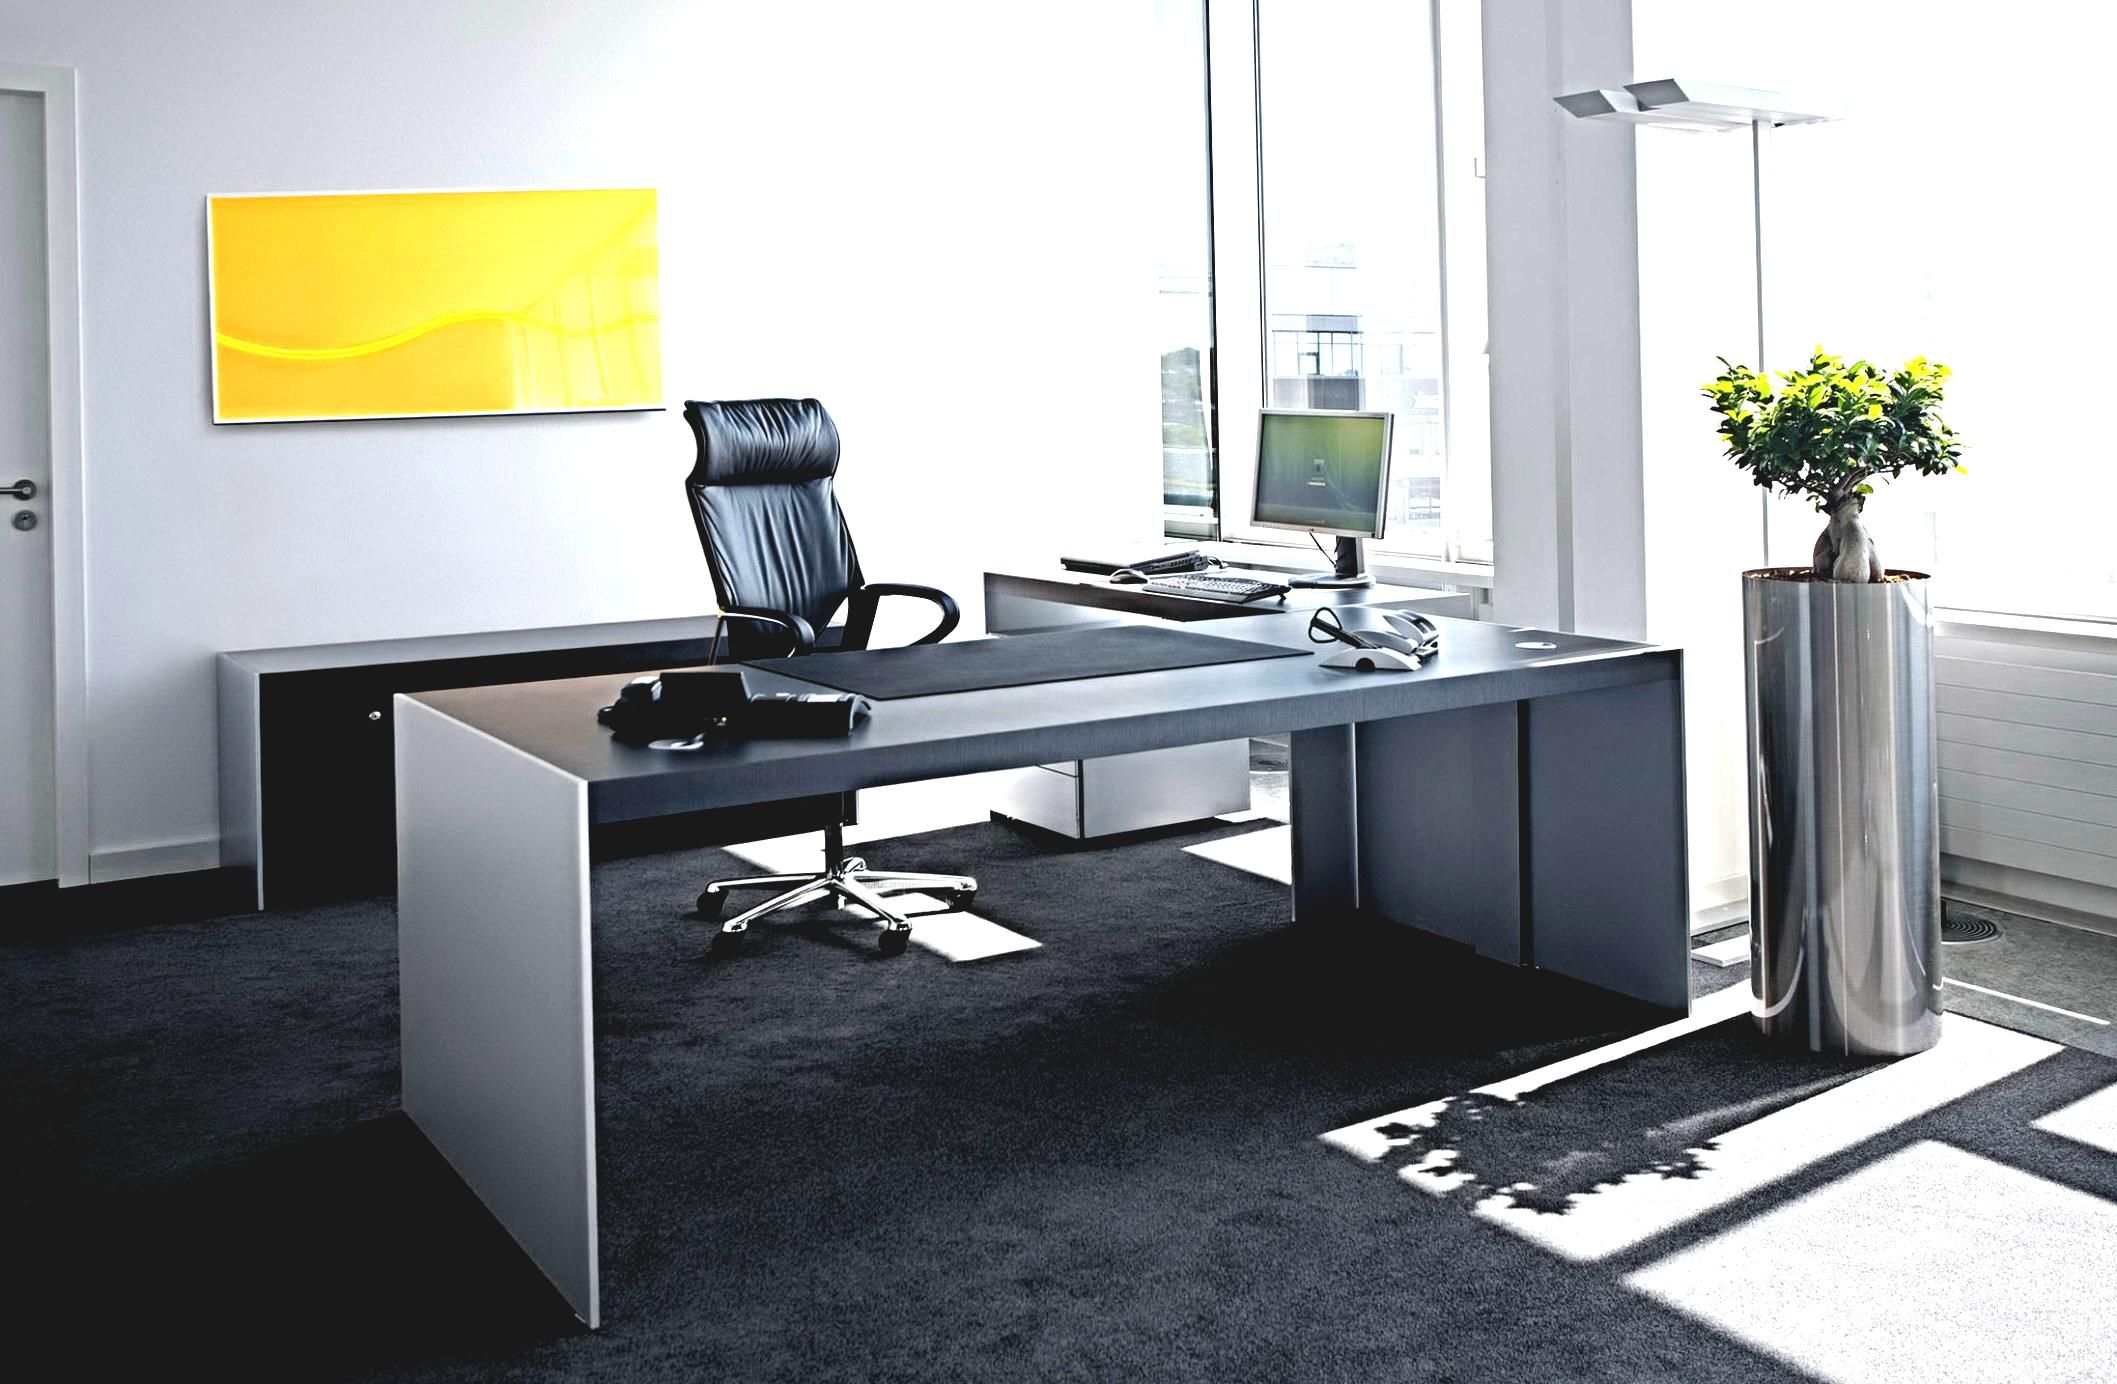 Superieur Design Minimalist Modern Home Office Furniture Home Business Office Desk  And Office Chairs Executive